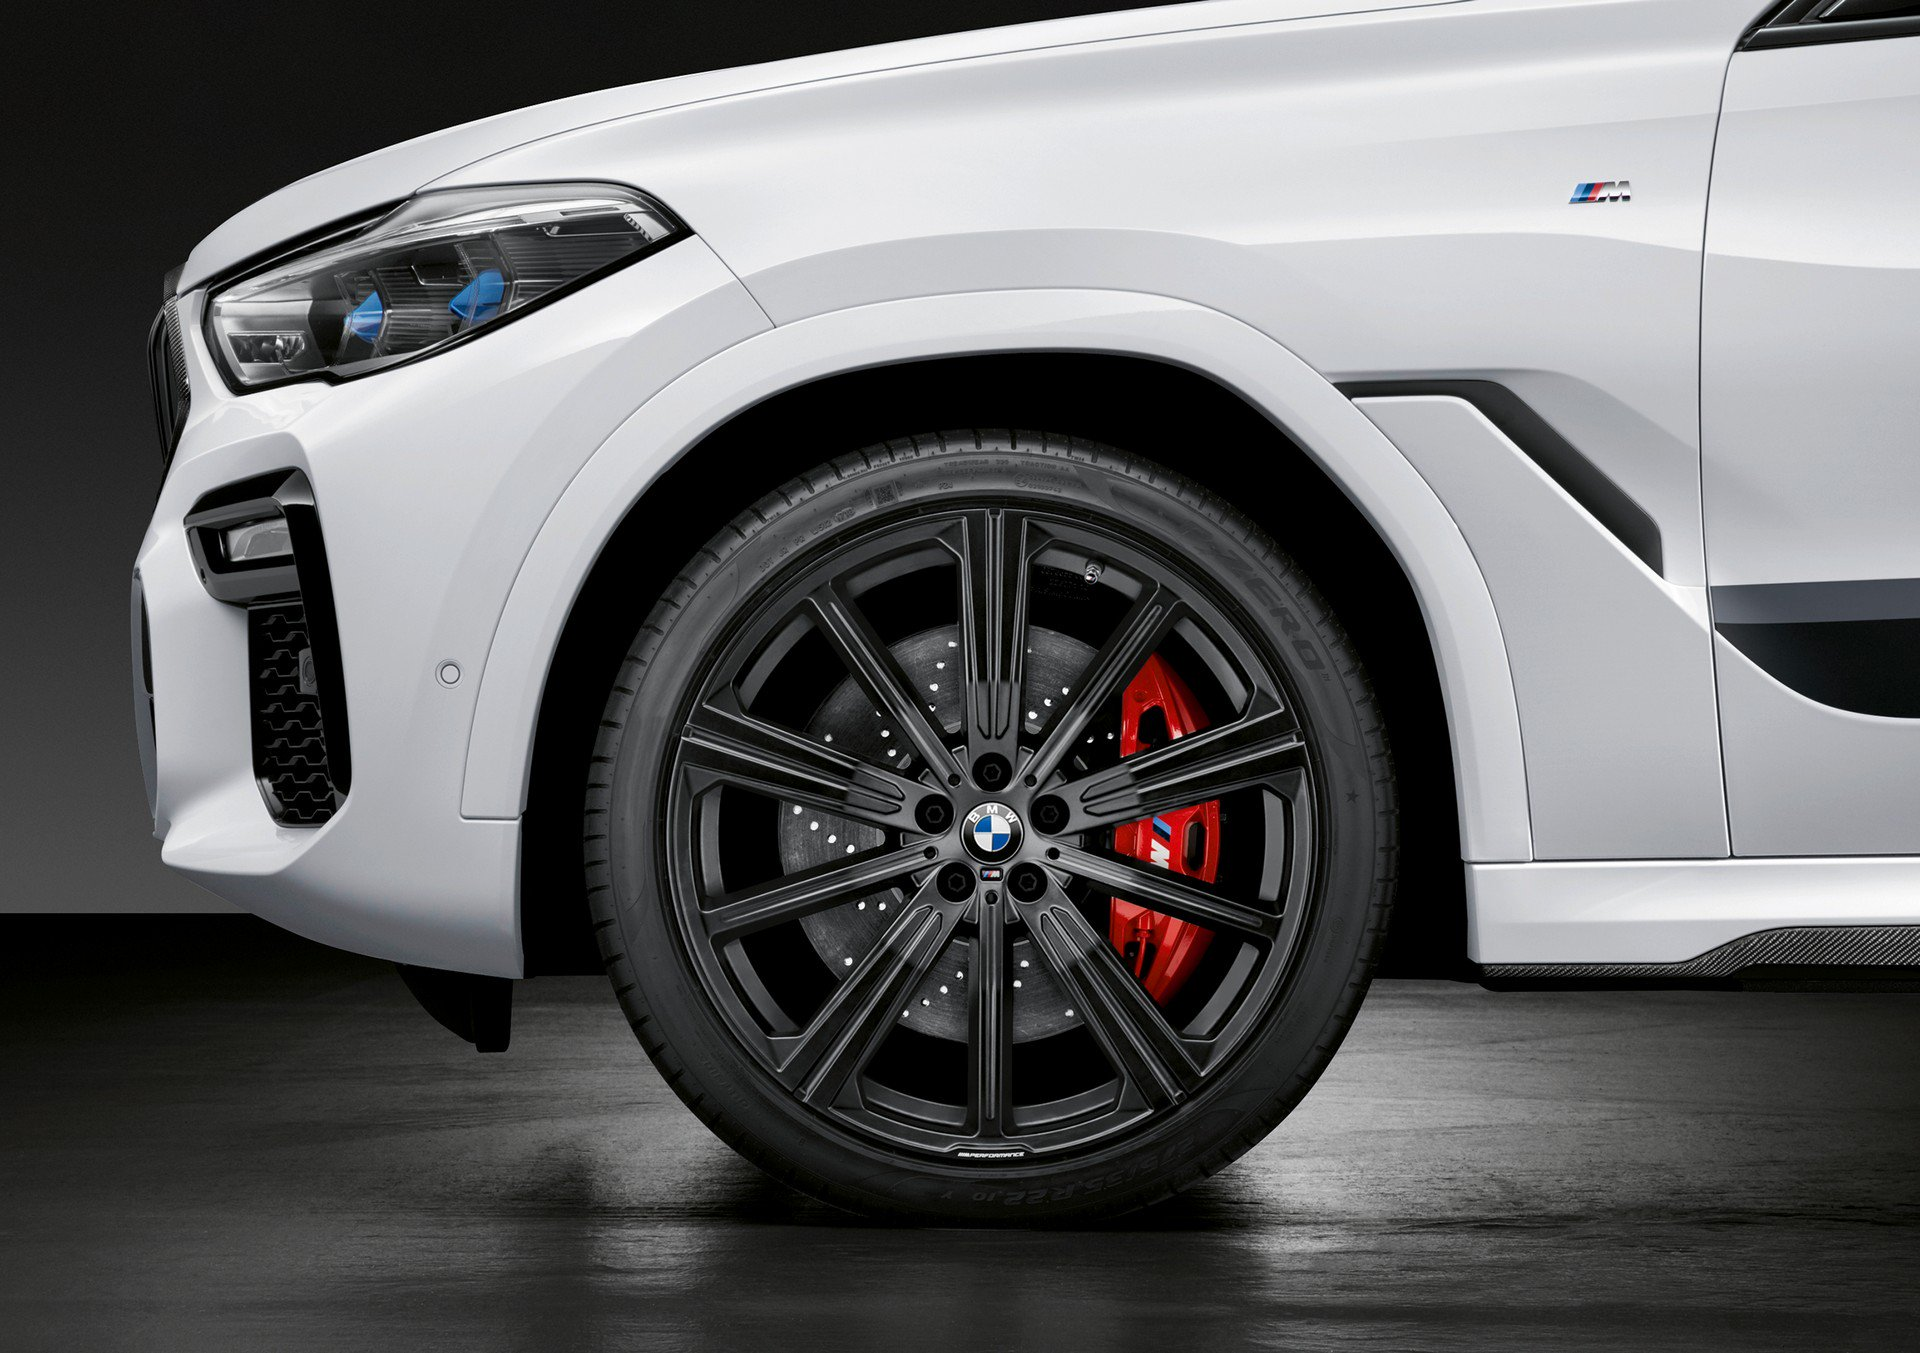 bmw-m-performance-parts-for-x5-x6-m-4.jpg